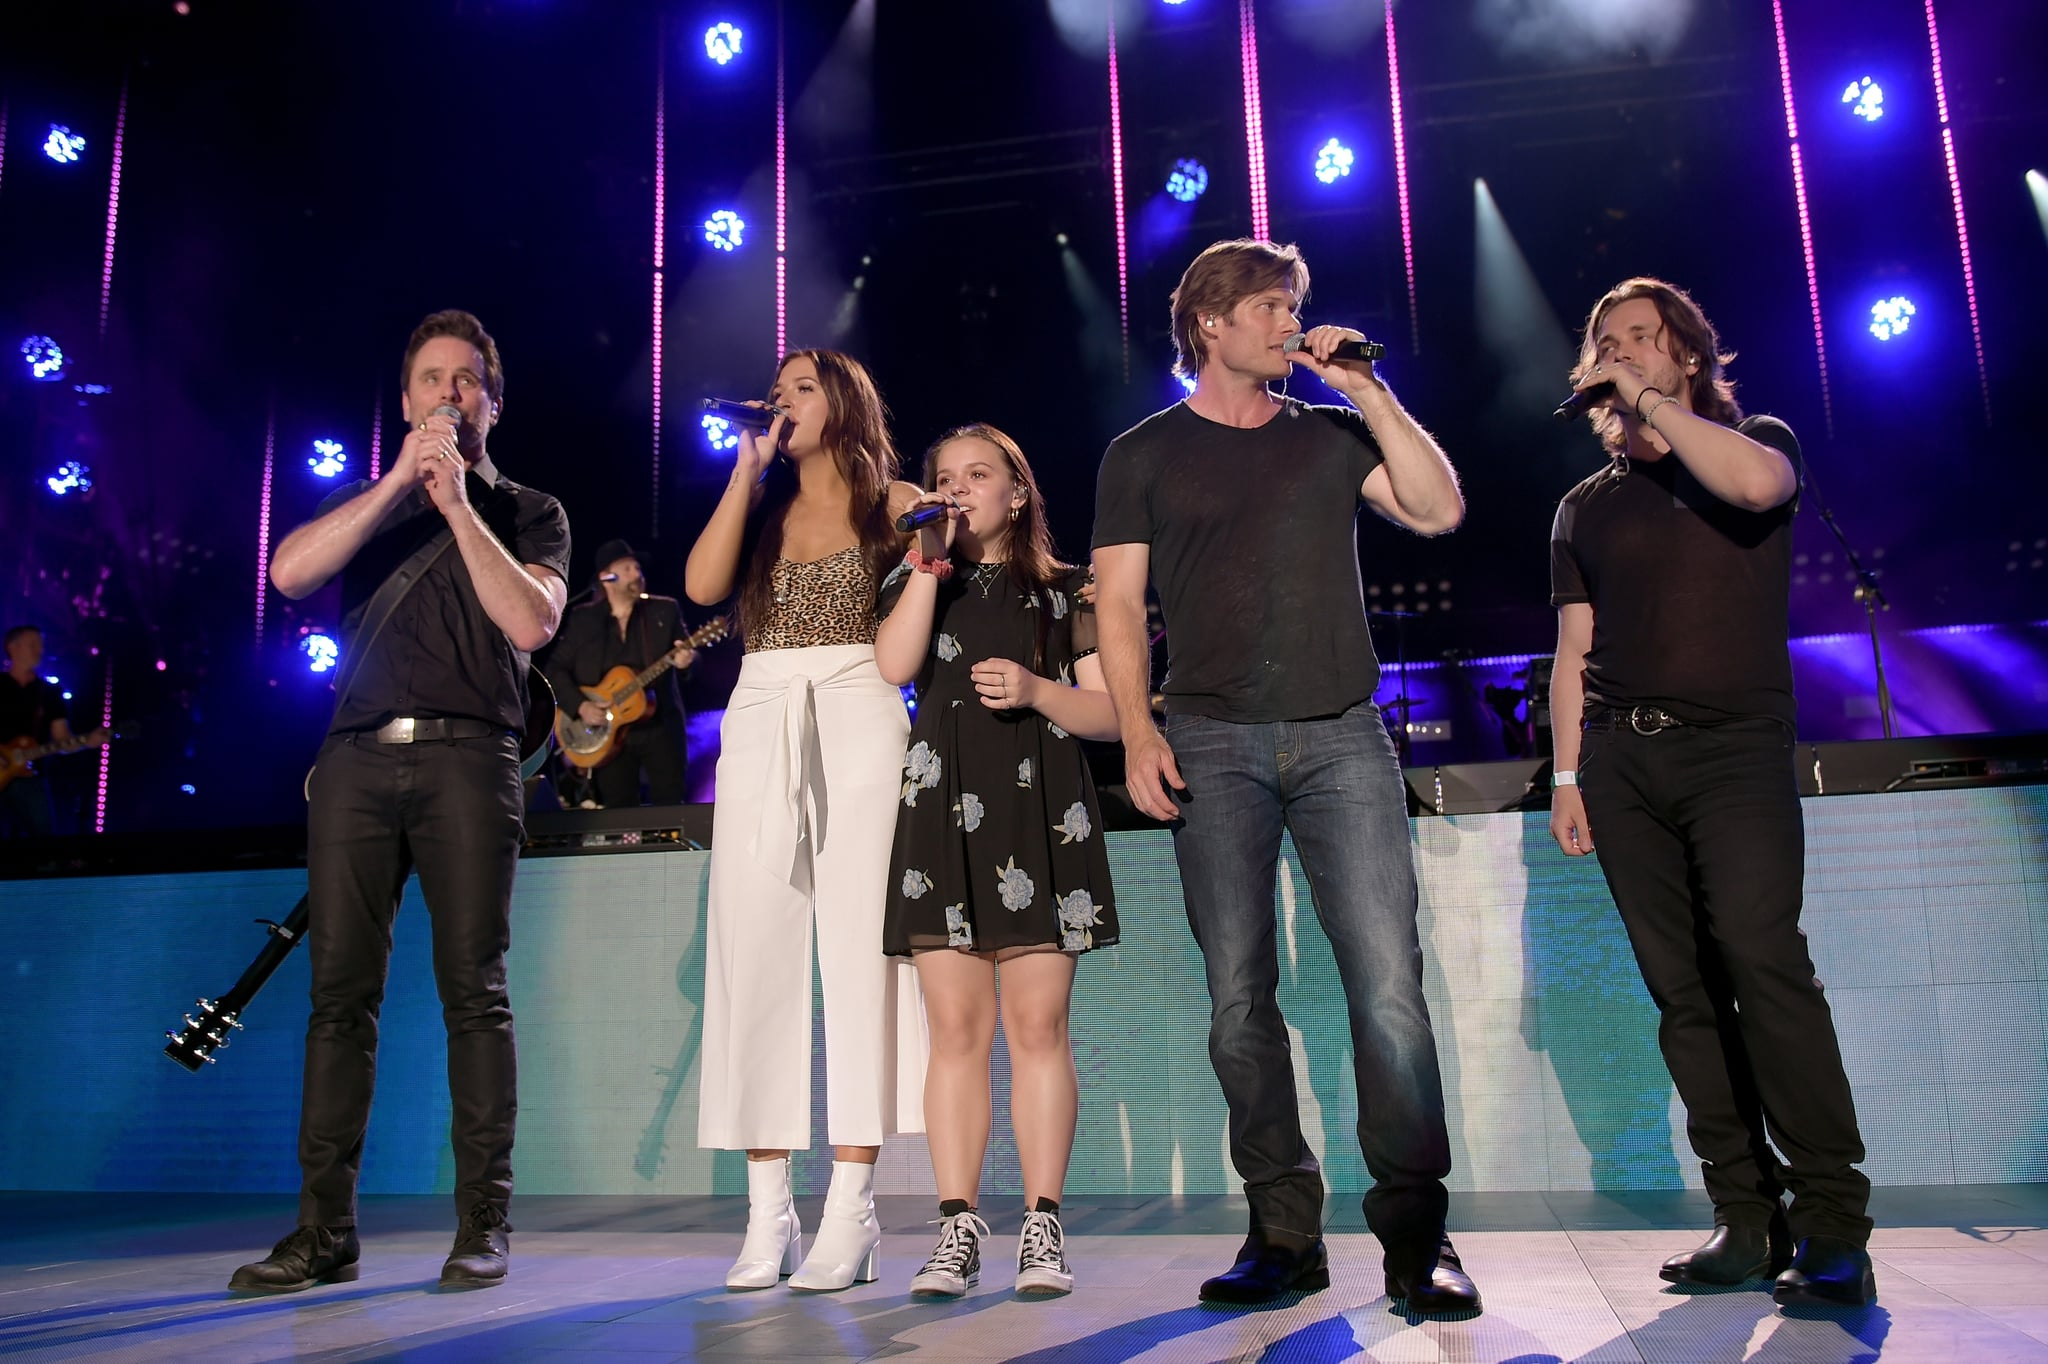 NASHVILLE, TN - JUNE 07:  (EDITORIAL USE ONLY) (L-R) Musicians Charles Esten, Lennon Stella, Maisy Stella, Chris Carmack and Jonathan Jackson perform onstage during the 2018 CMA Music festival at the Nissan Stadium on June 7, 2018 in Nashville, Tennessee.  (Photo by Jason Kempin/Getty Images)